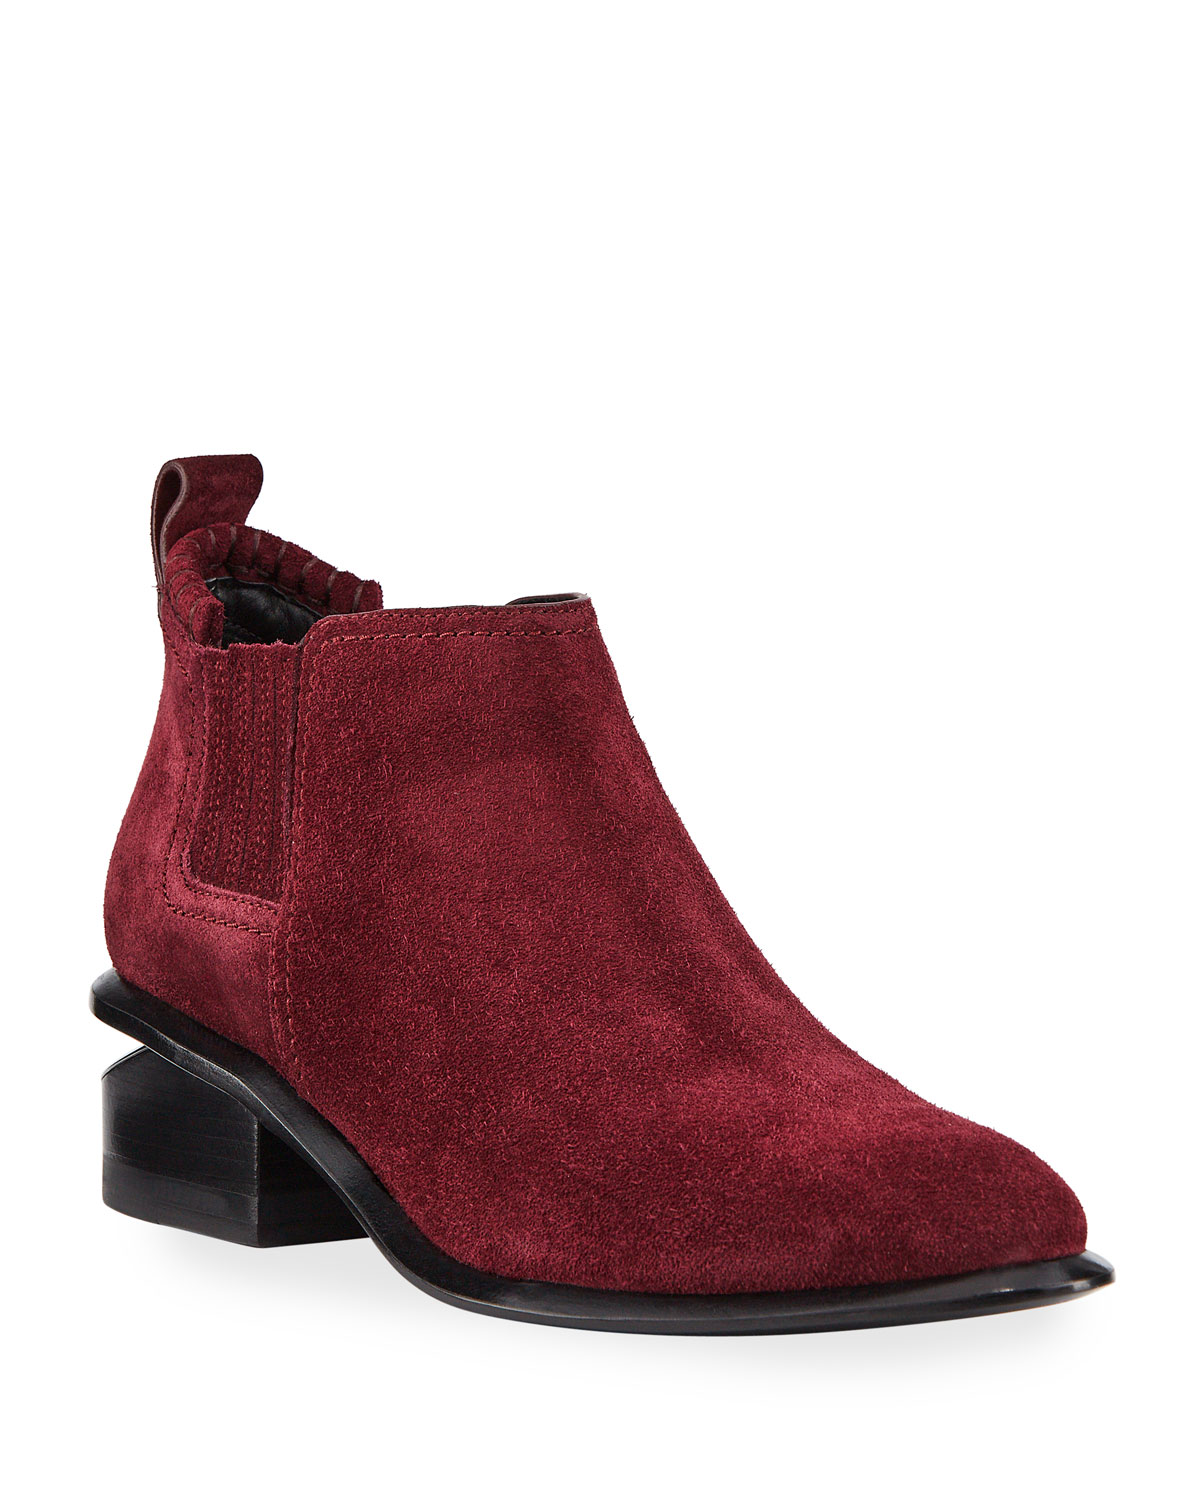 Kori Low-Heel Suede Booties